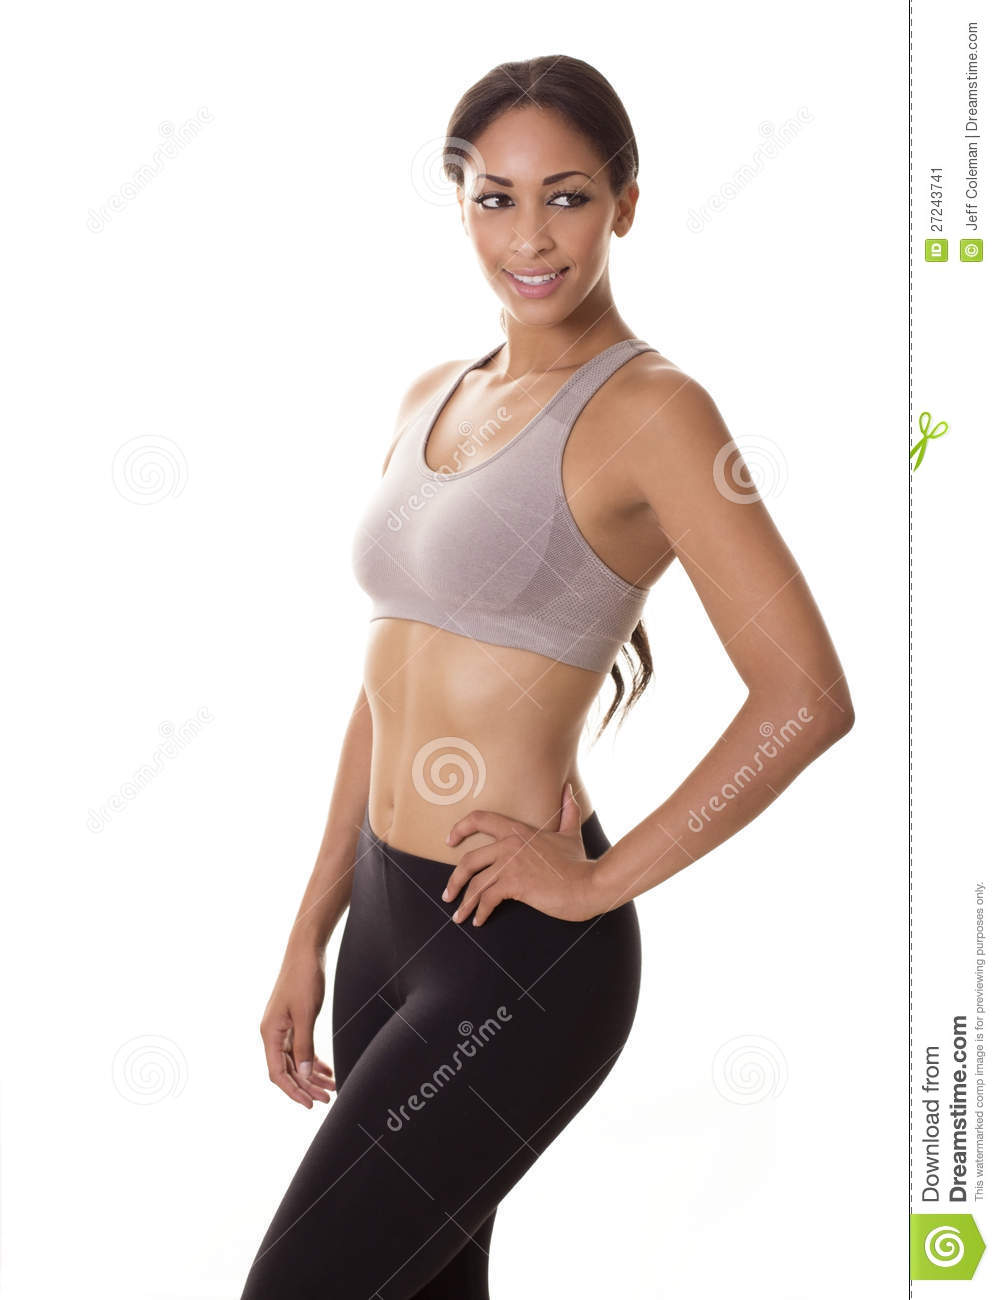 Beautiful Young Woman In Fitness Sports Bra Outfit Stock ...